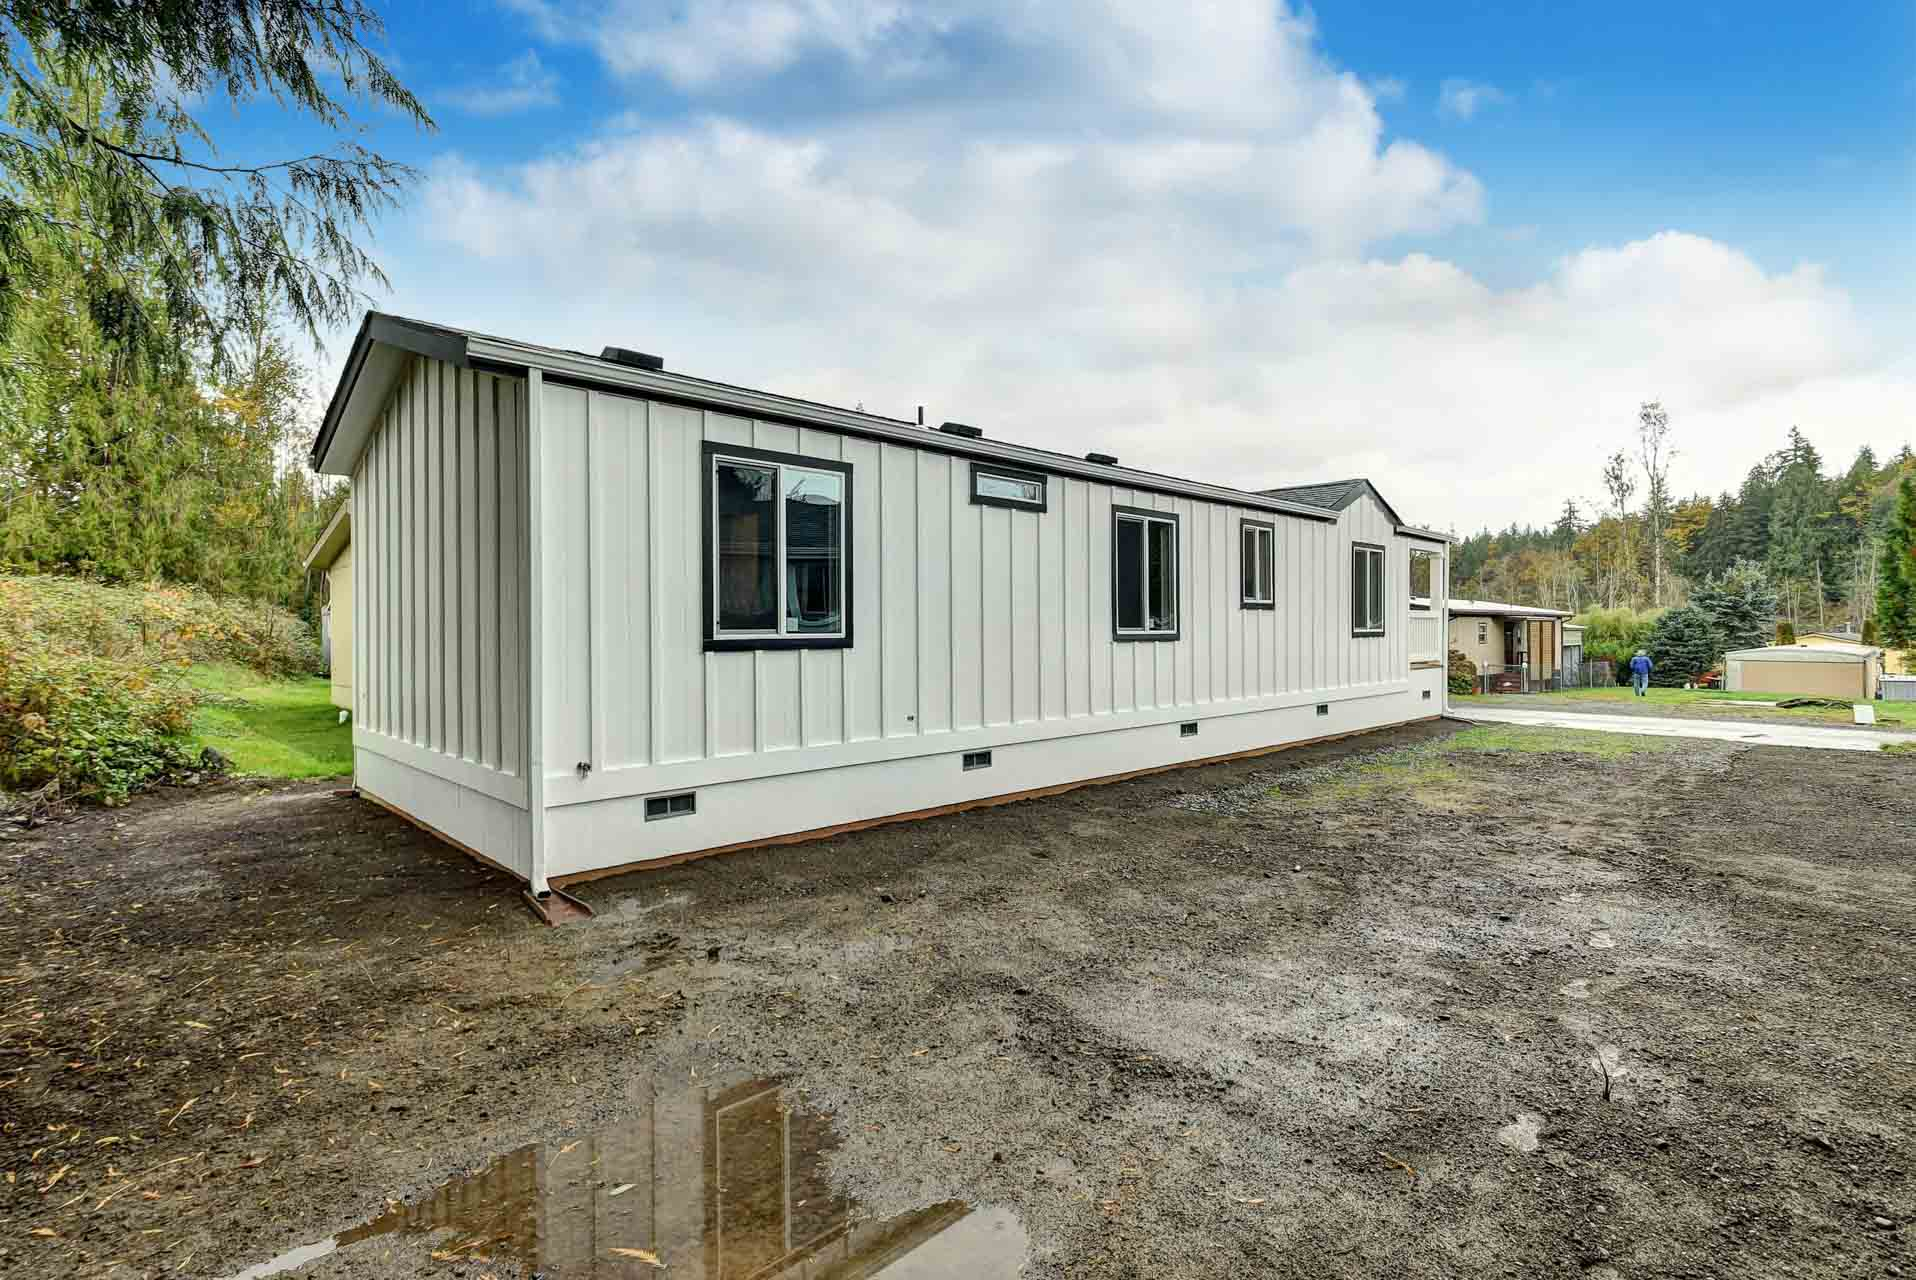 Ramada Value / 7953CTB by Skyline Homes on villager mobile home, adobe mobile home, hilton mobile home, red roof mobile home, homestead mobile home, fairmont mobile home, fairfield mobile home, marriott mobile home, renaissance mobile home, suburban mobile home,